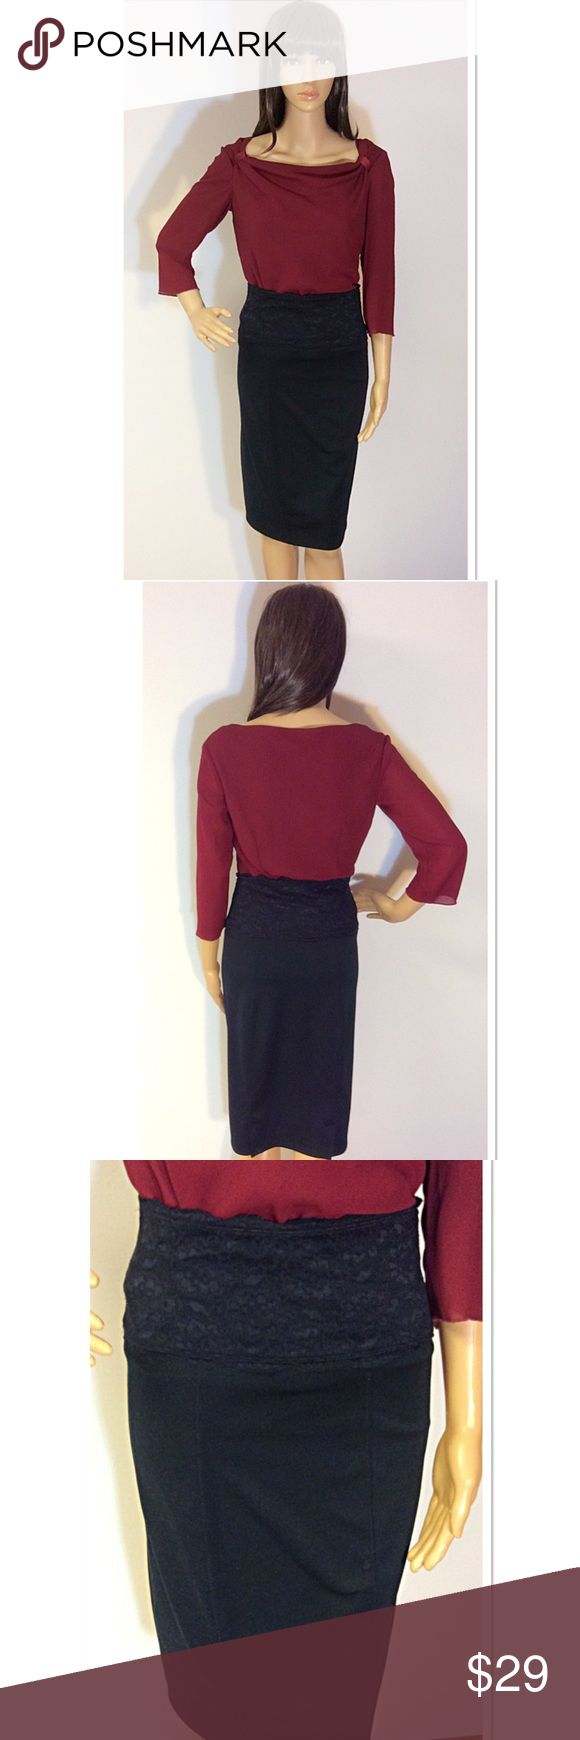 SLIMMING BLACK POLYESTER SPANDEX LACE SKIRT Great body-con black skirt that will slim you like no other. It's curve flattering with a beautiful wide lace waist slim fabulous Skirts